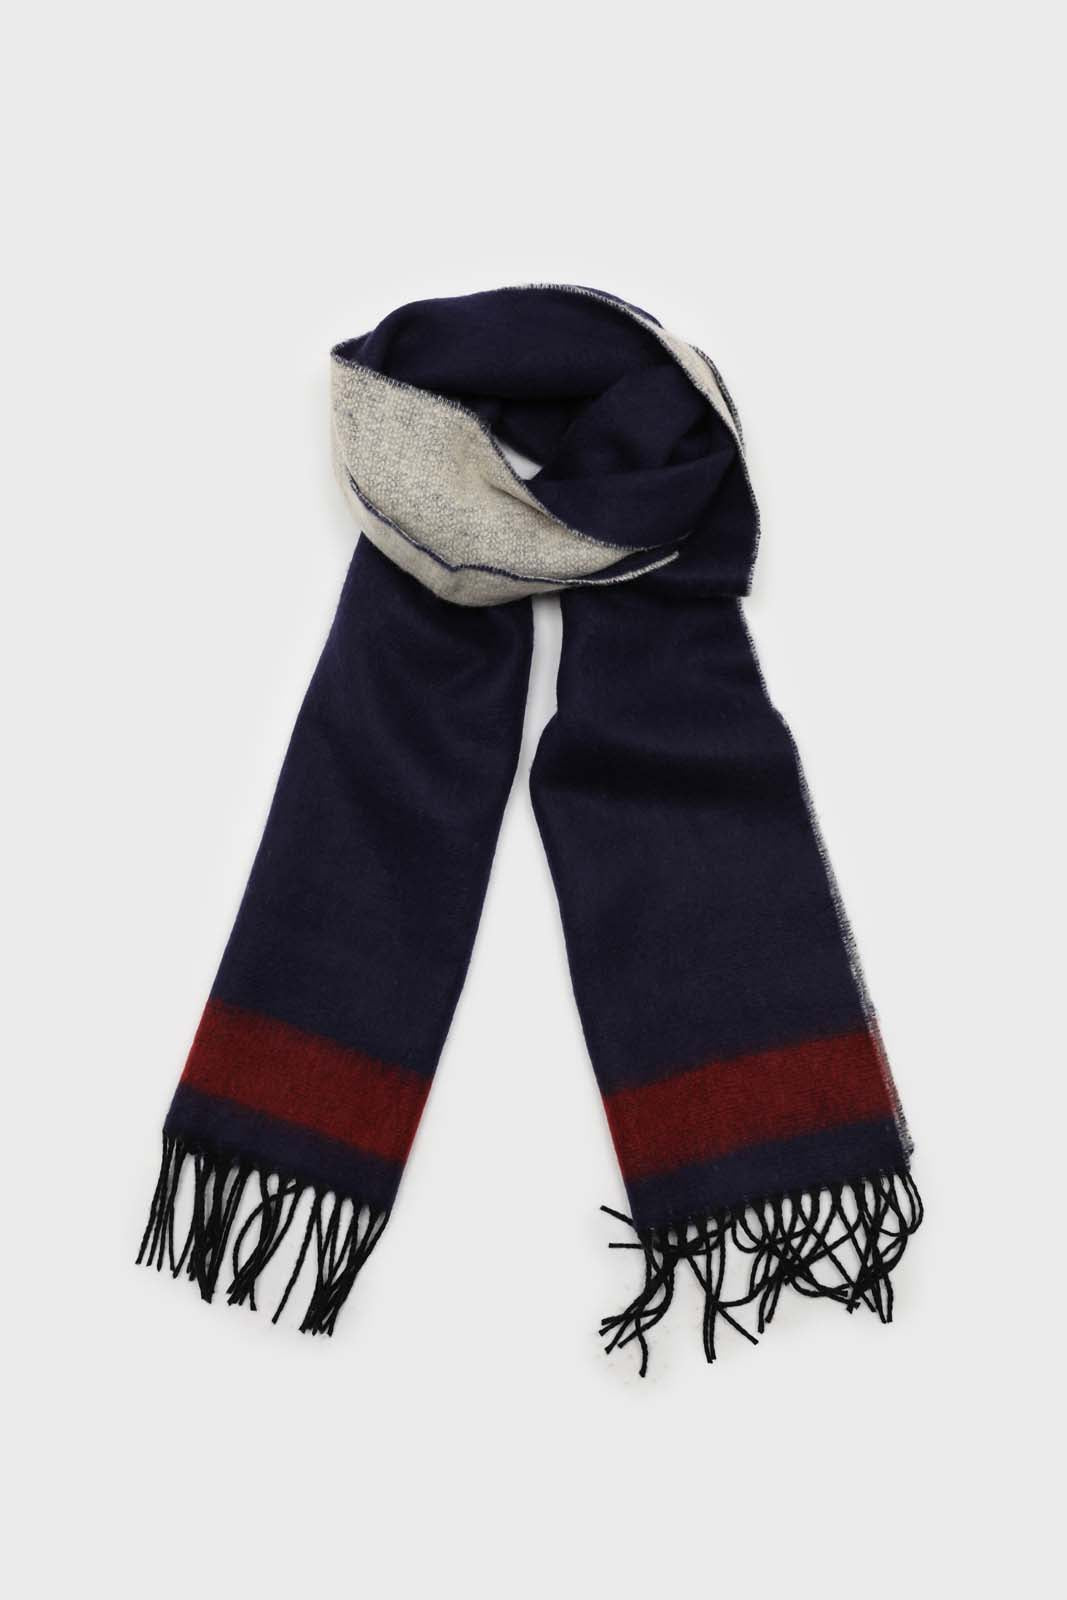 Navy and red contrast block fringe scarf1sx